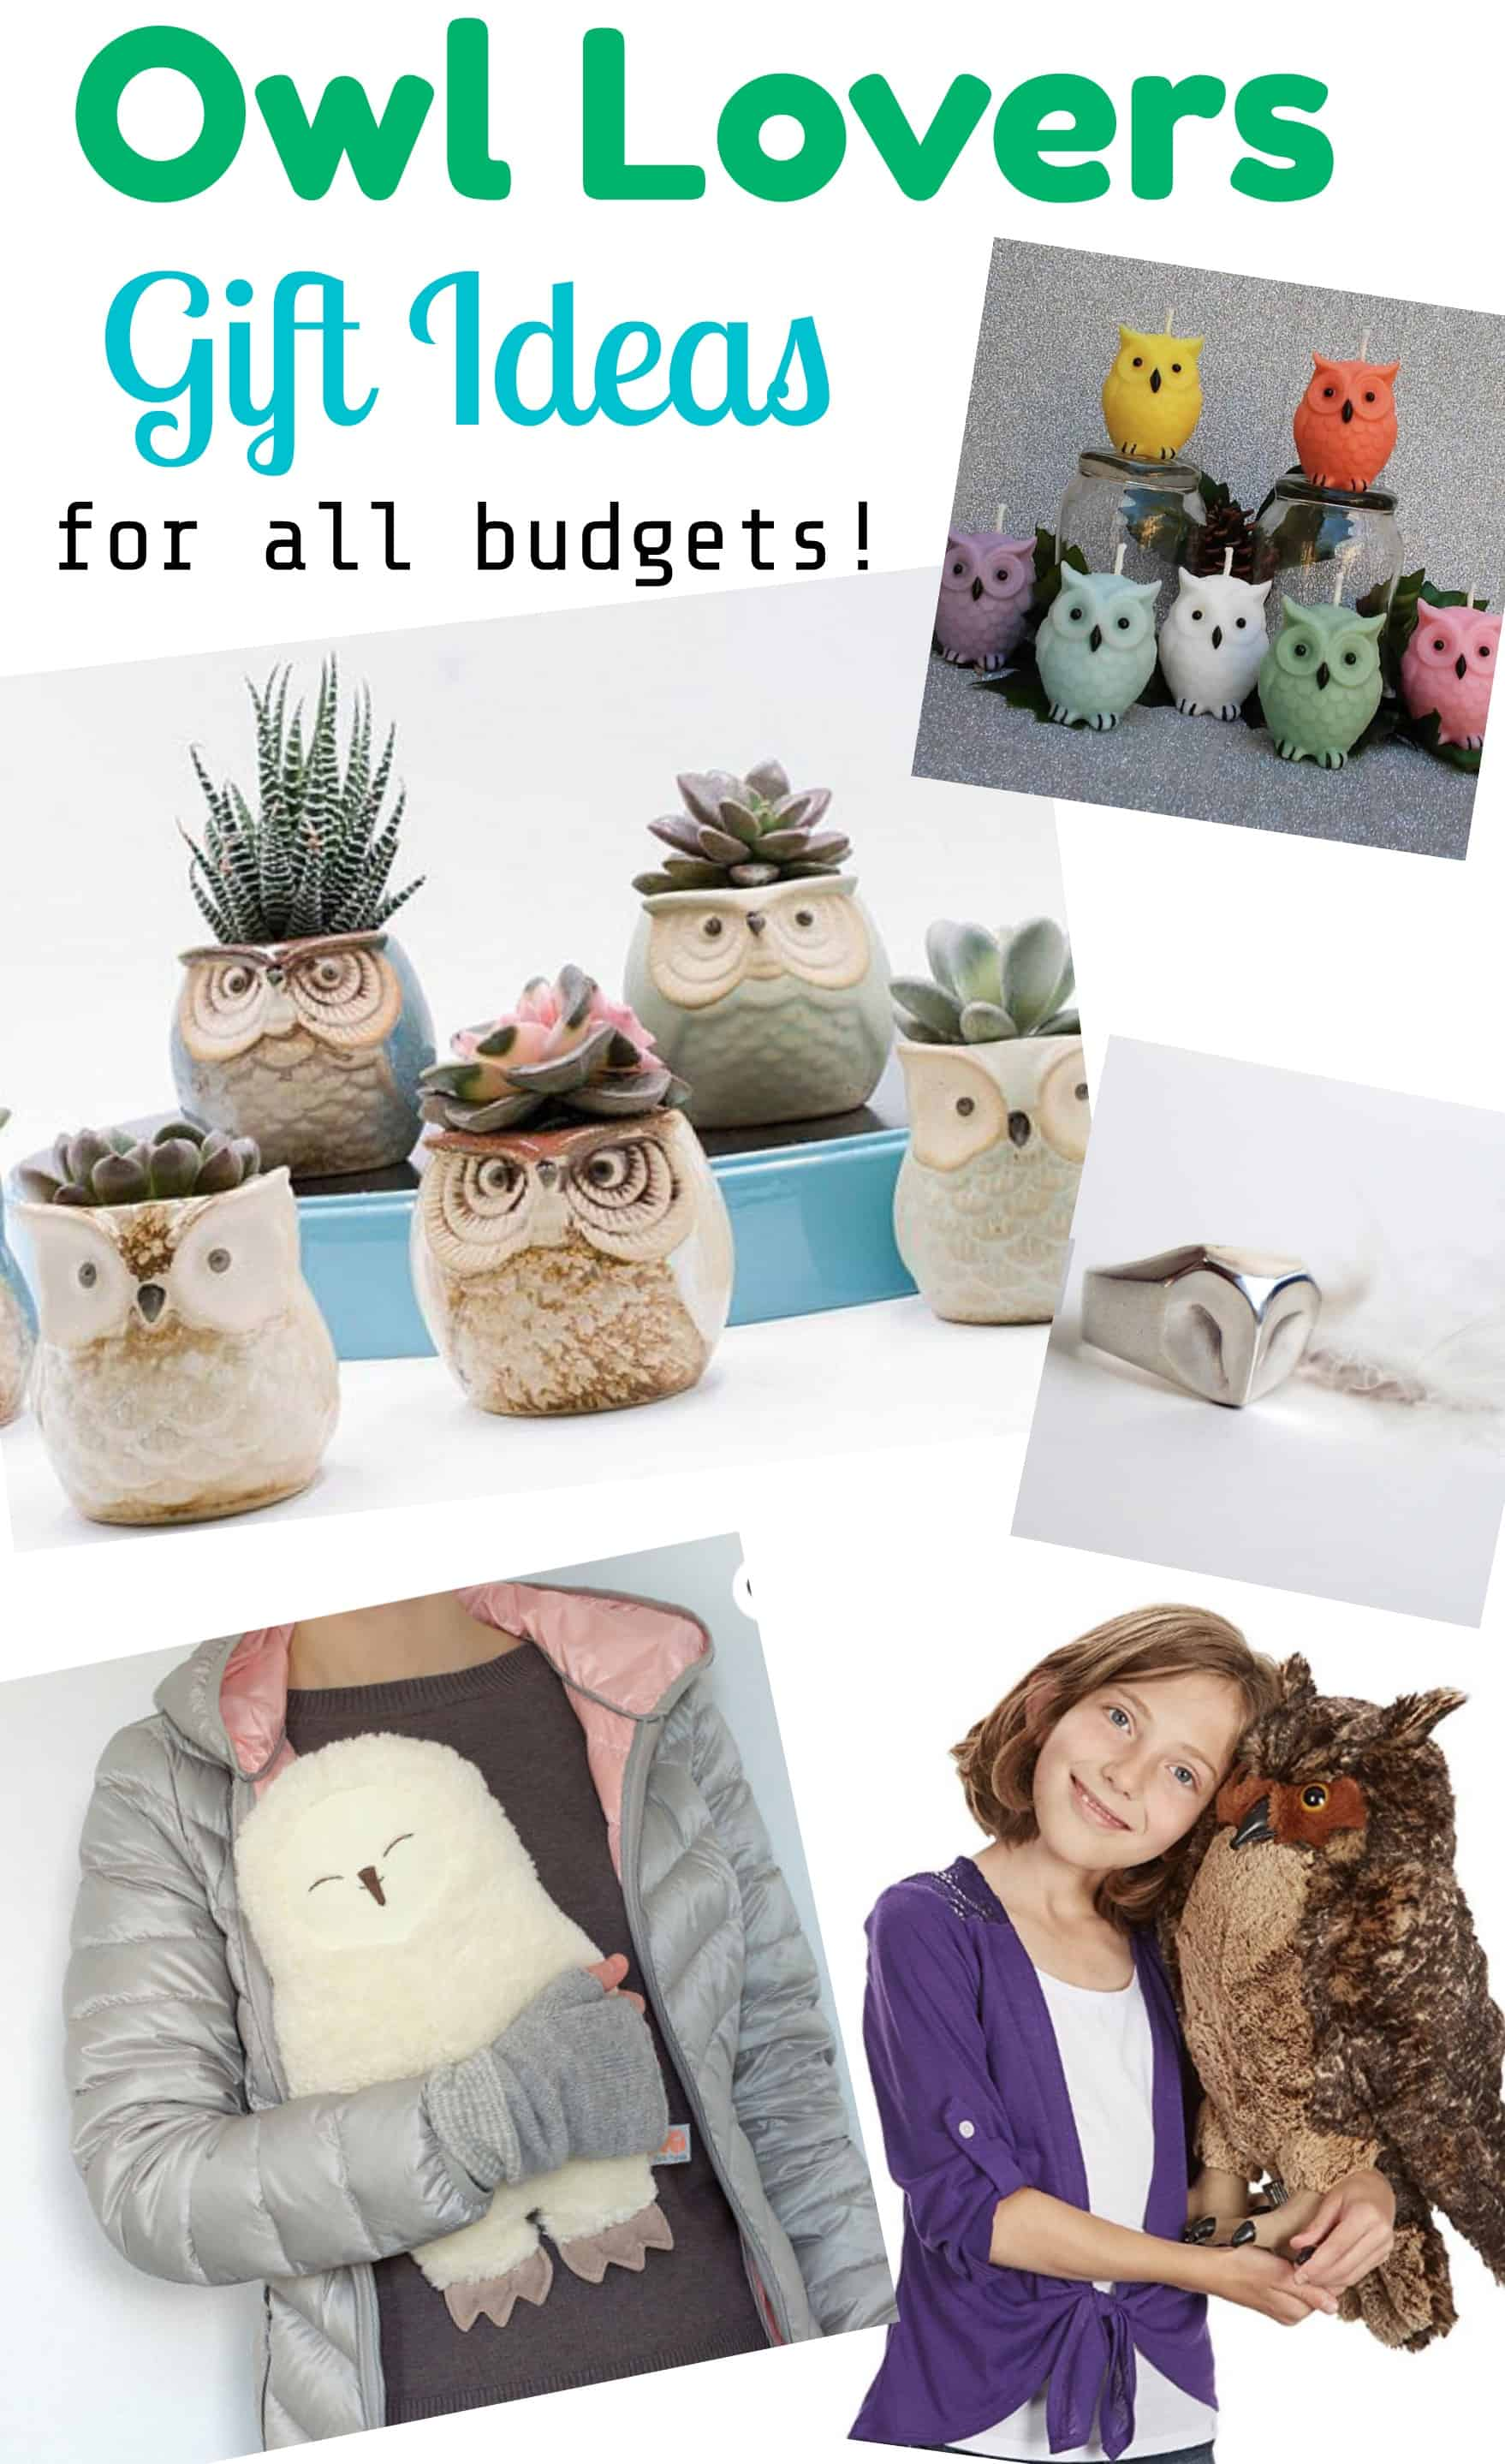 Owl Lovers Gift Ideas for All Budgets